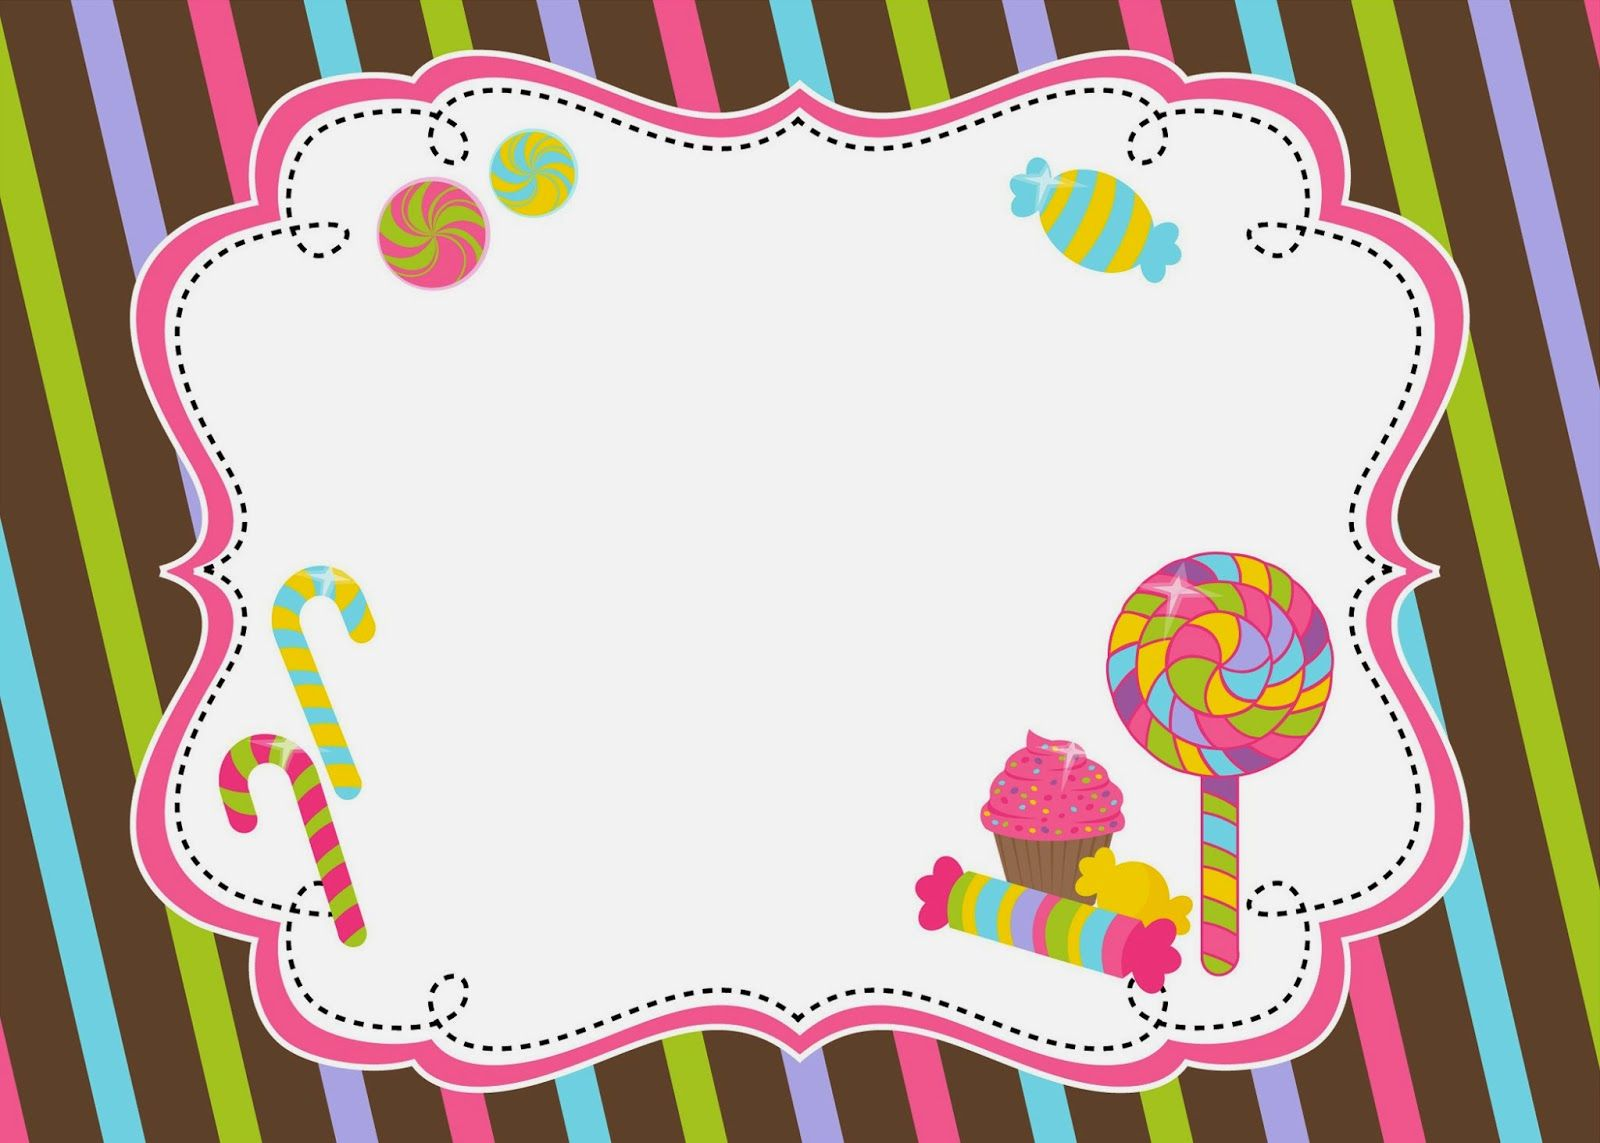 Candyland clipart frame. Pin by jackeline on